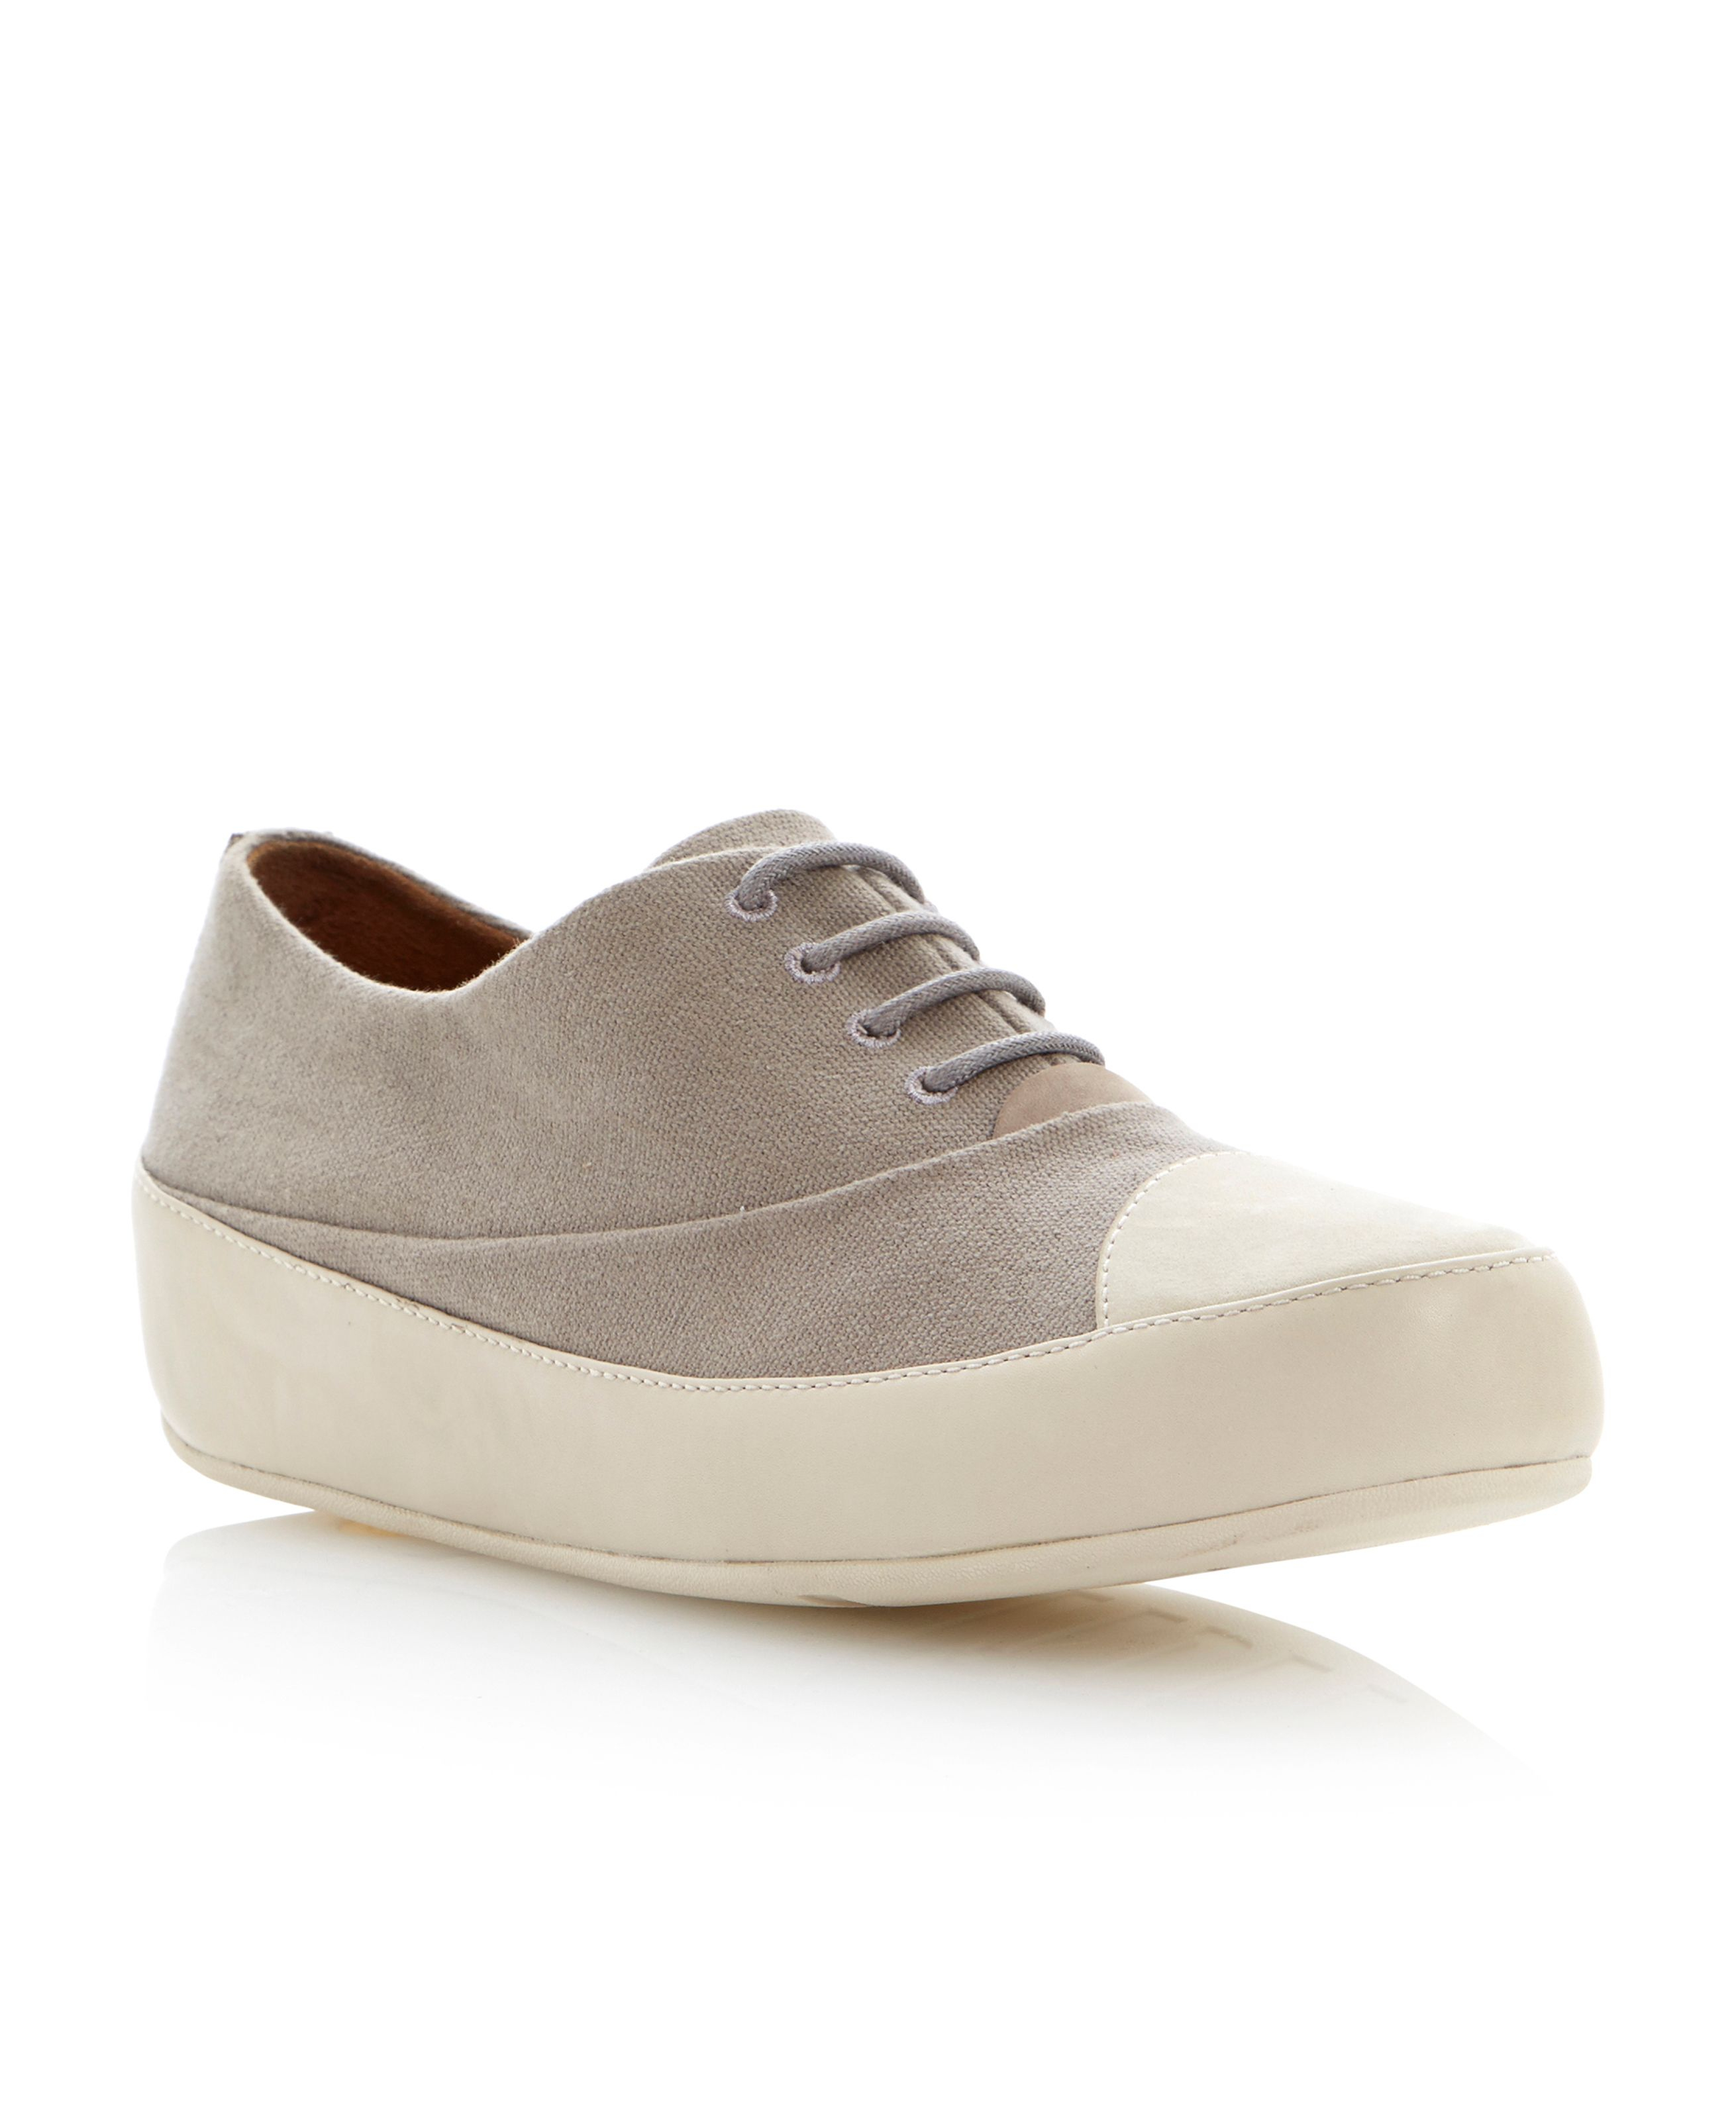 fitflop due oxford canvas